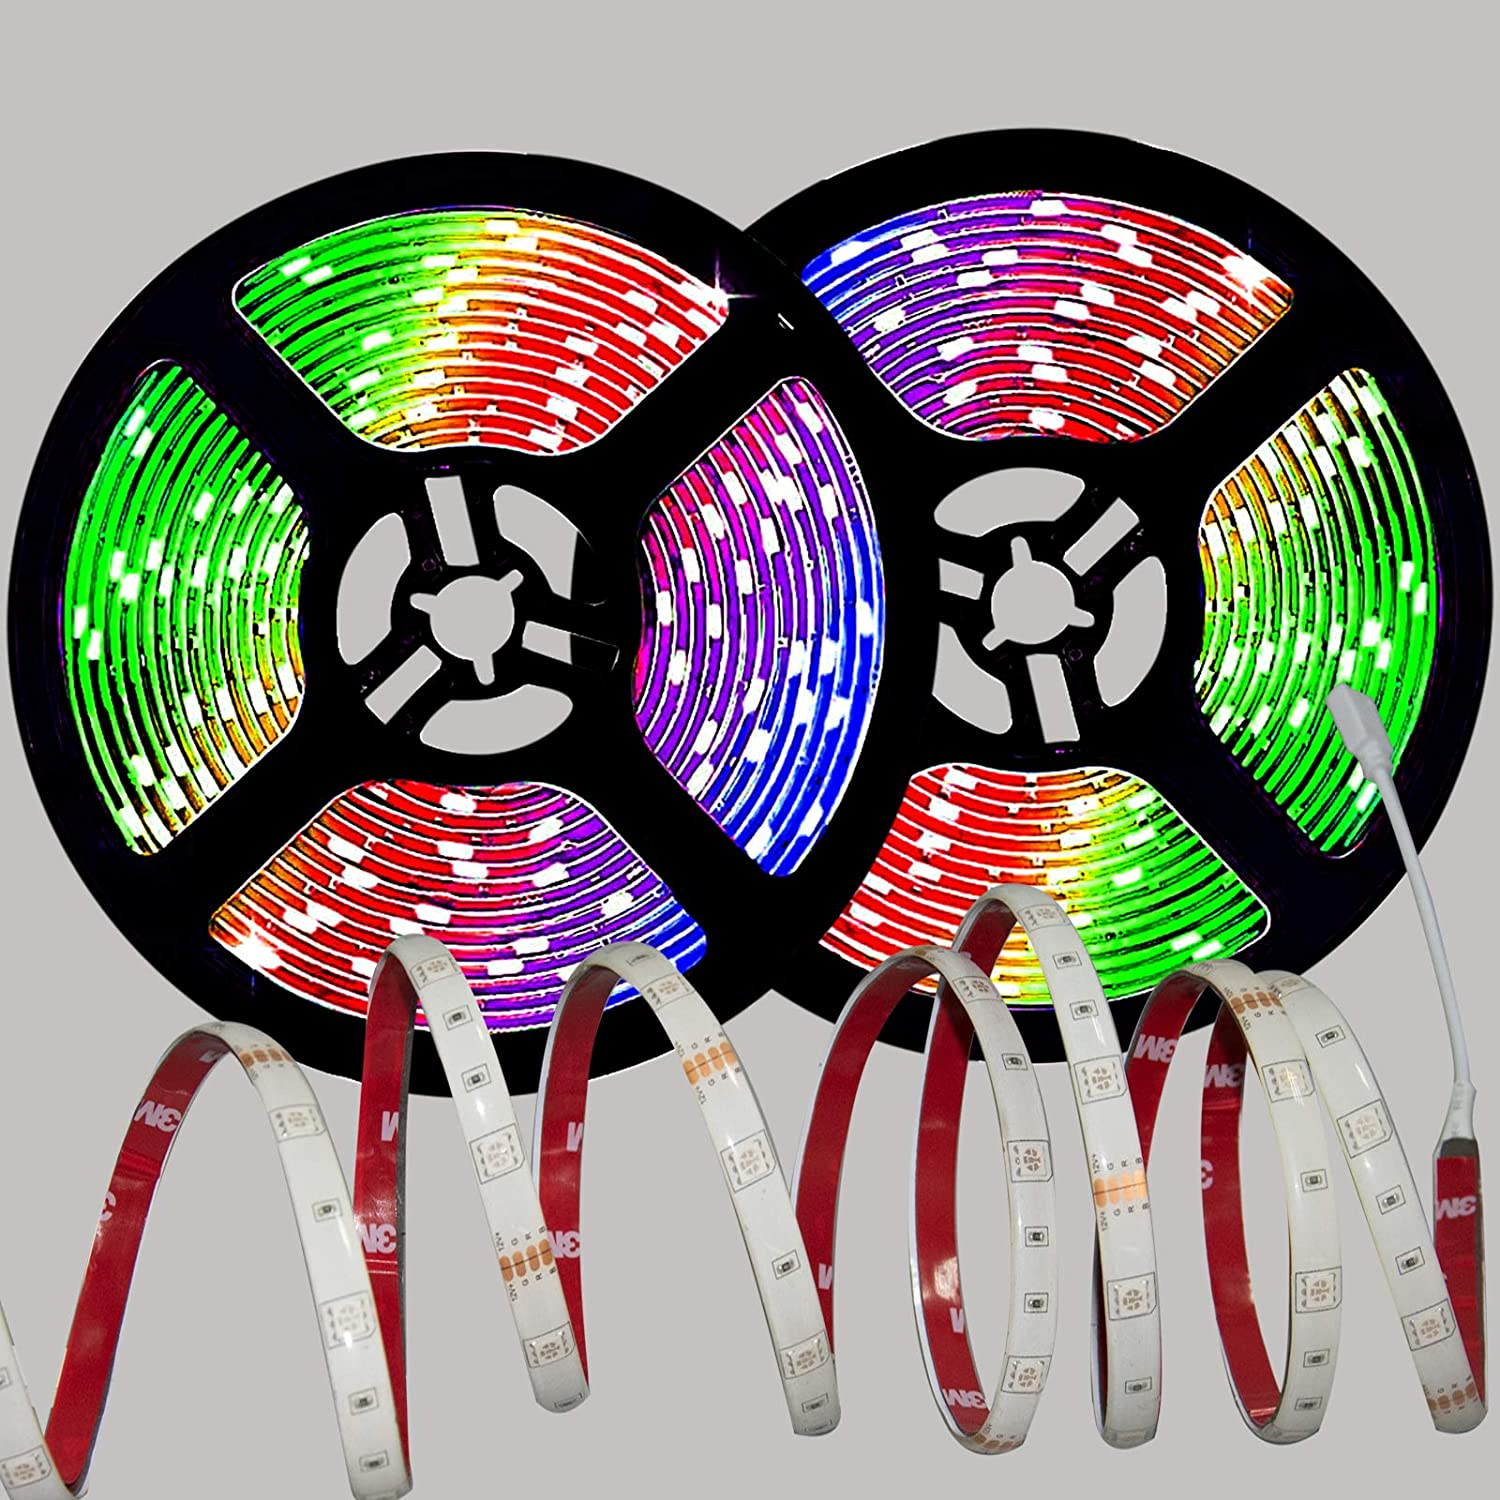 JASOTO LED Lights Strip Ranking TOP2 Waterproof Cha 32.8FT Save money Dimmable Color RGB